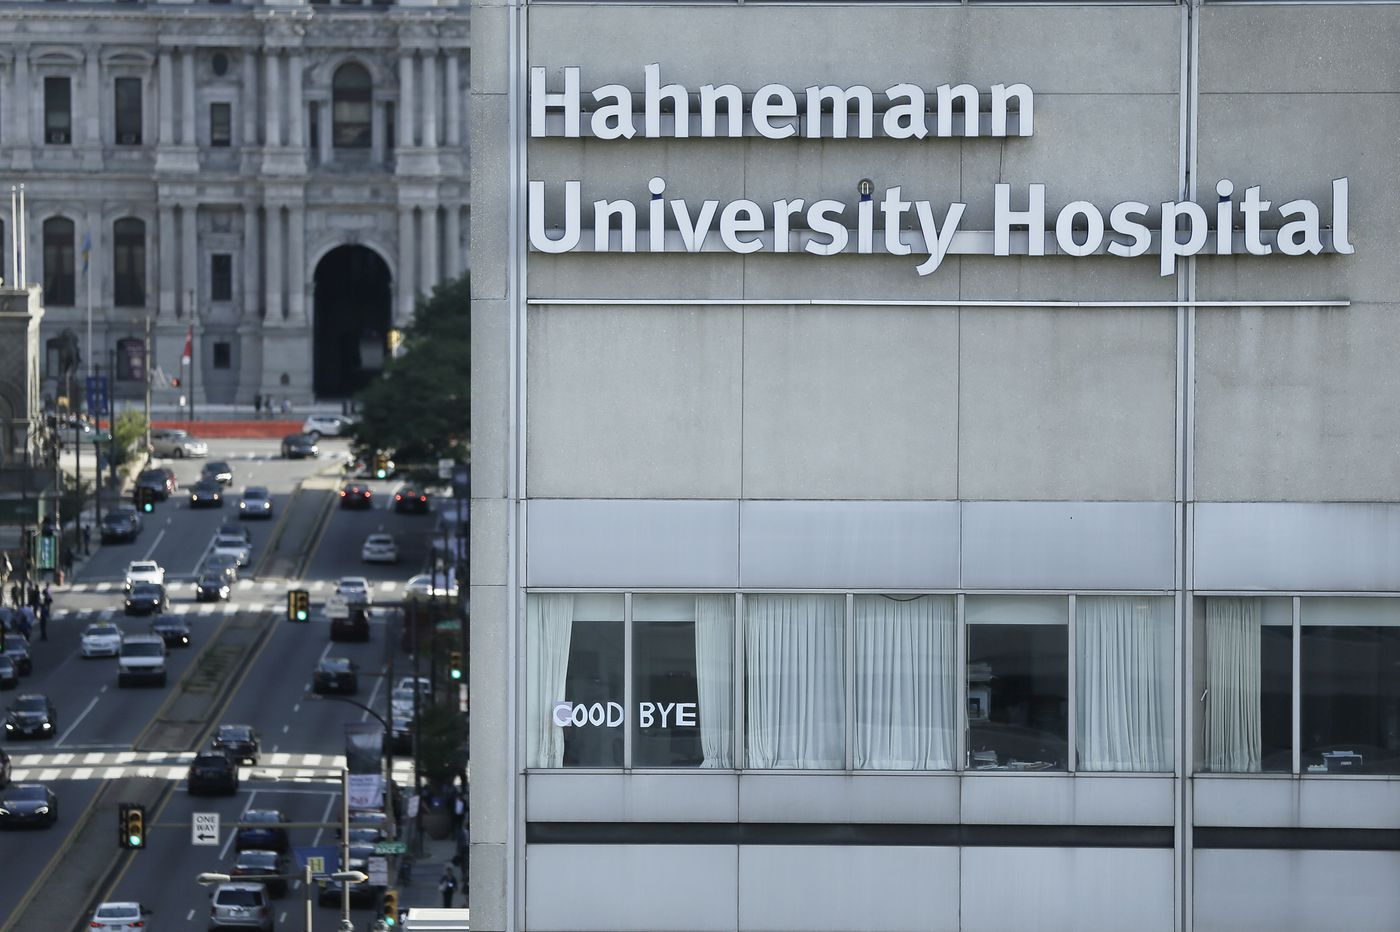 Hahnemann bankruptcy pays $millions to consultants, lawyers